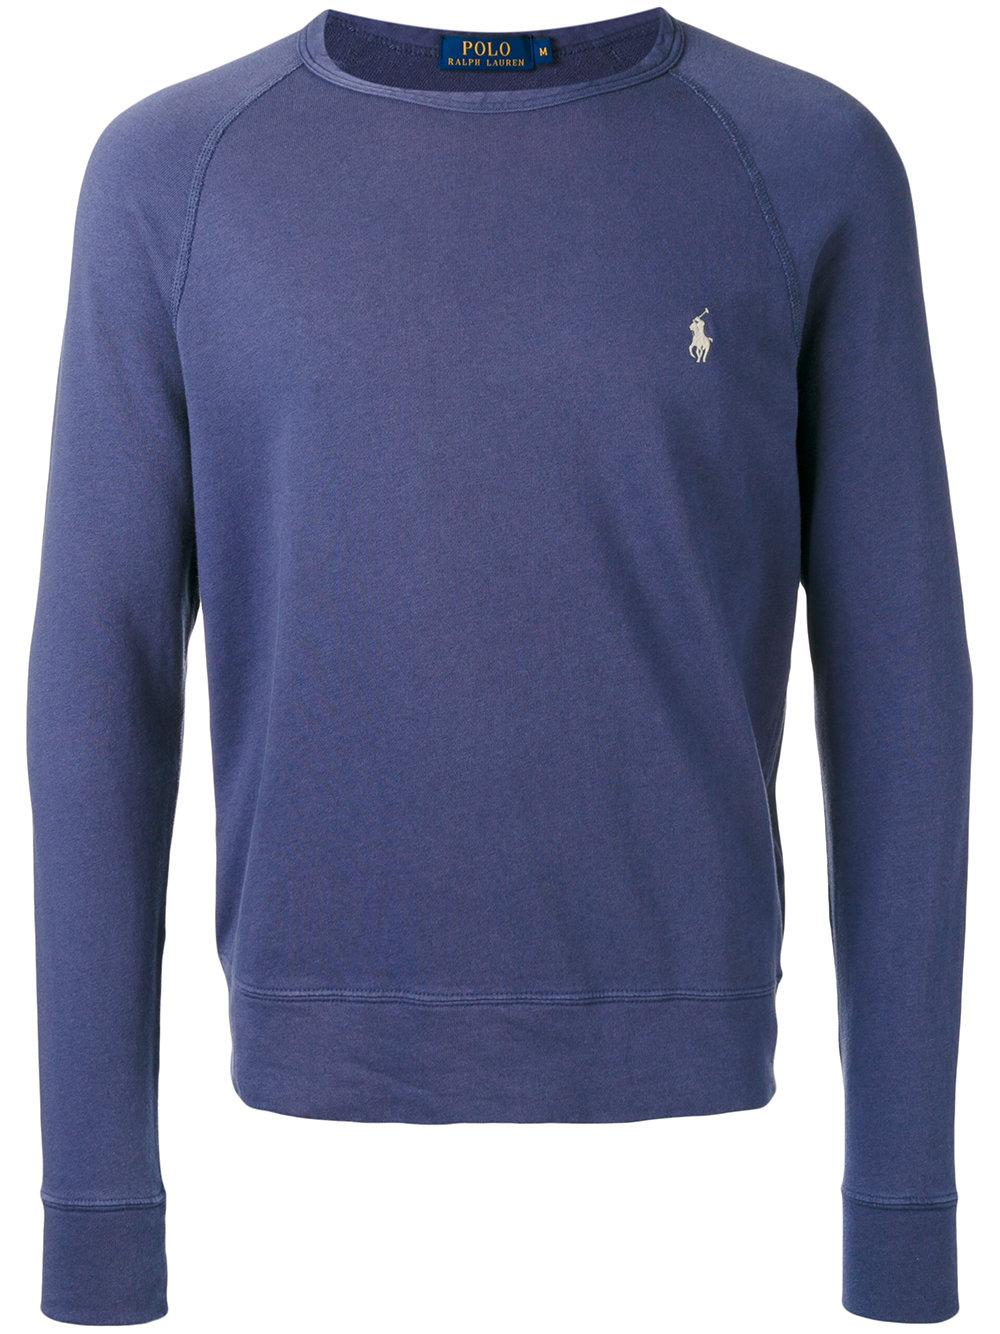 polo ralph lauren logo embroidered sweatshirt in blue for men lyst. Black Bedroom Furniture Sets. Home Design Ideas